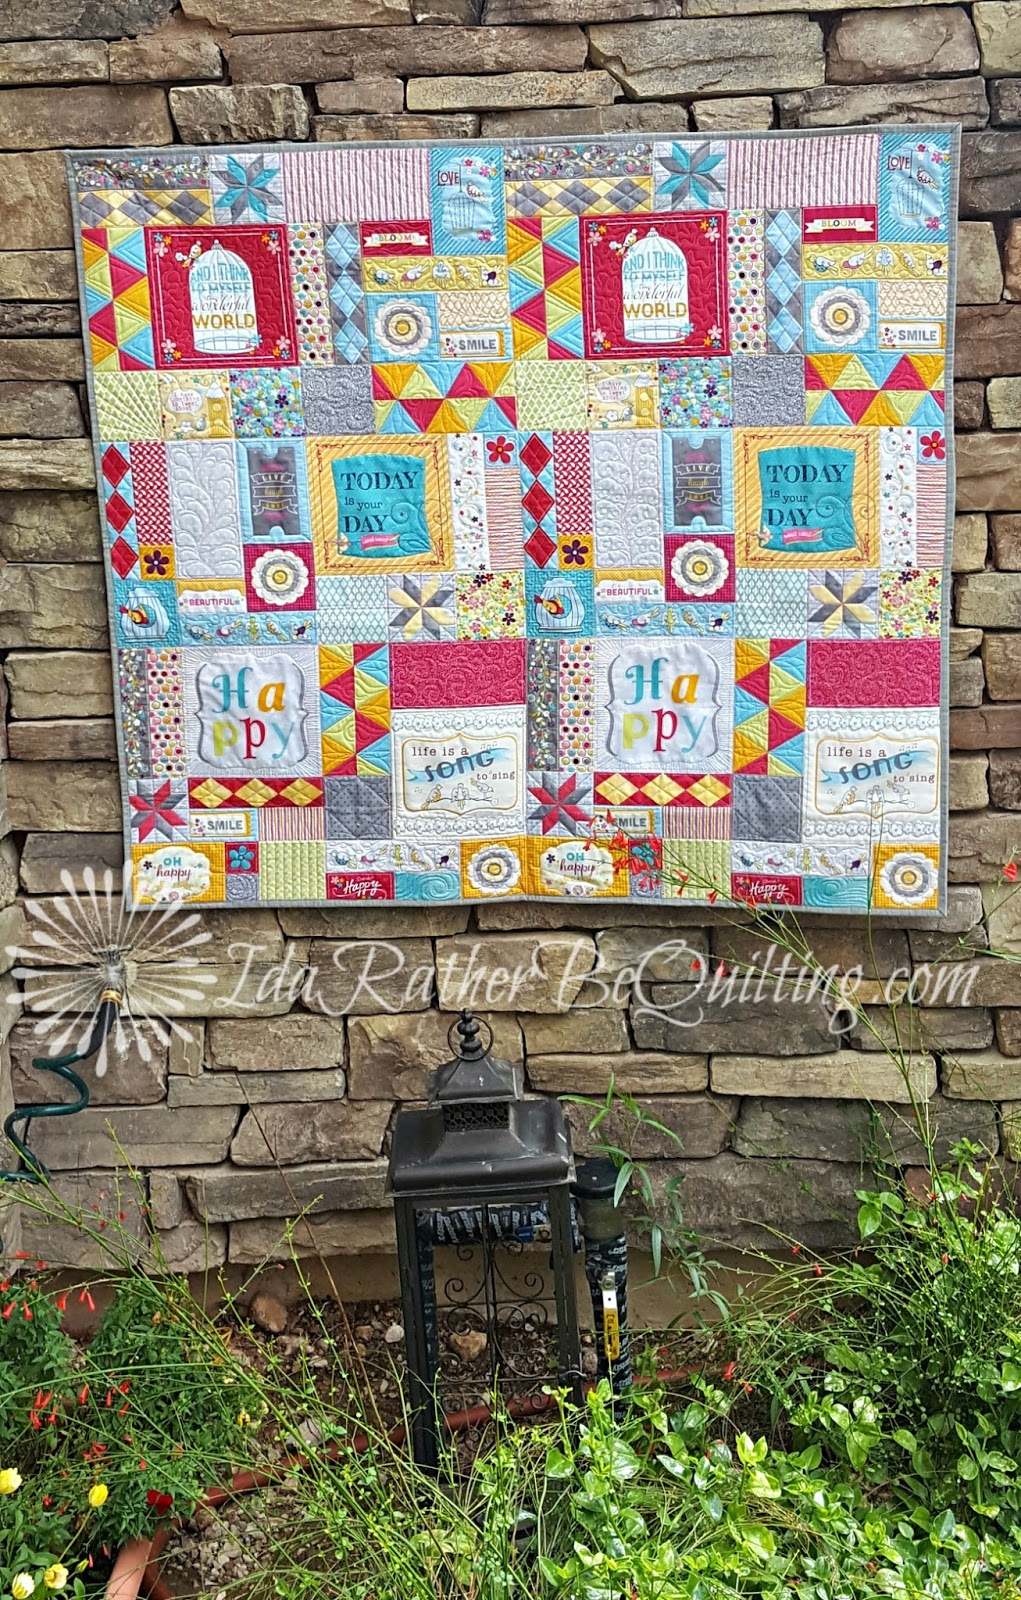 Ida Rather Be Quilting: